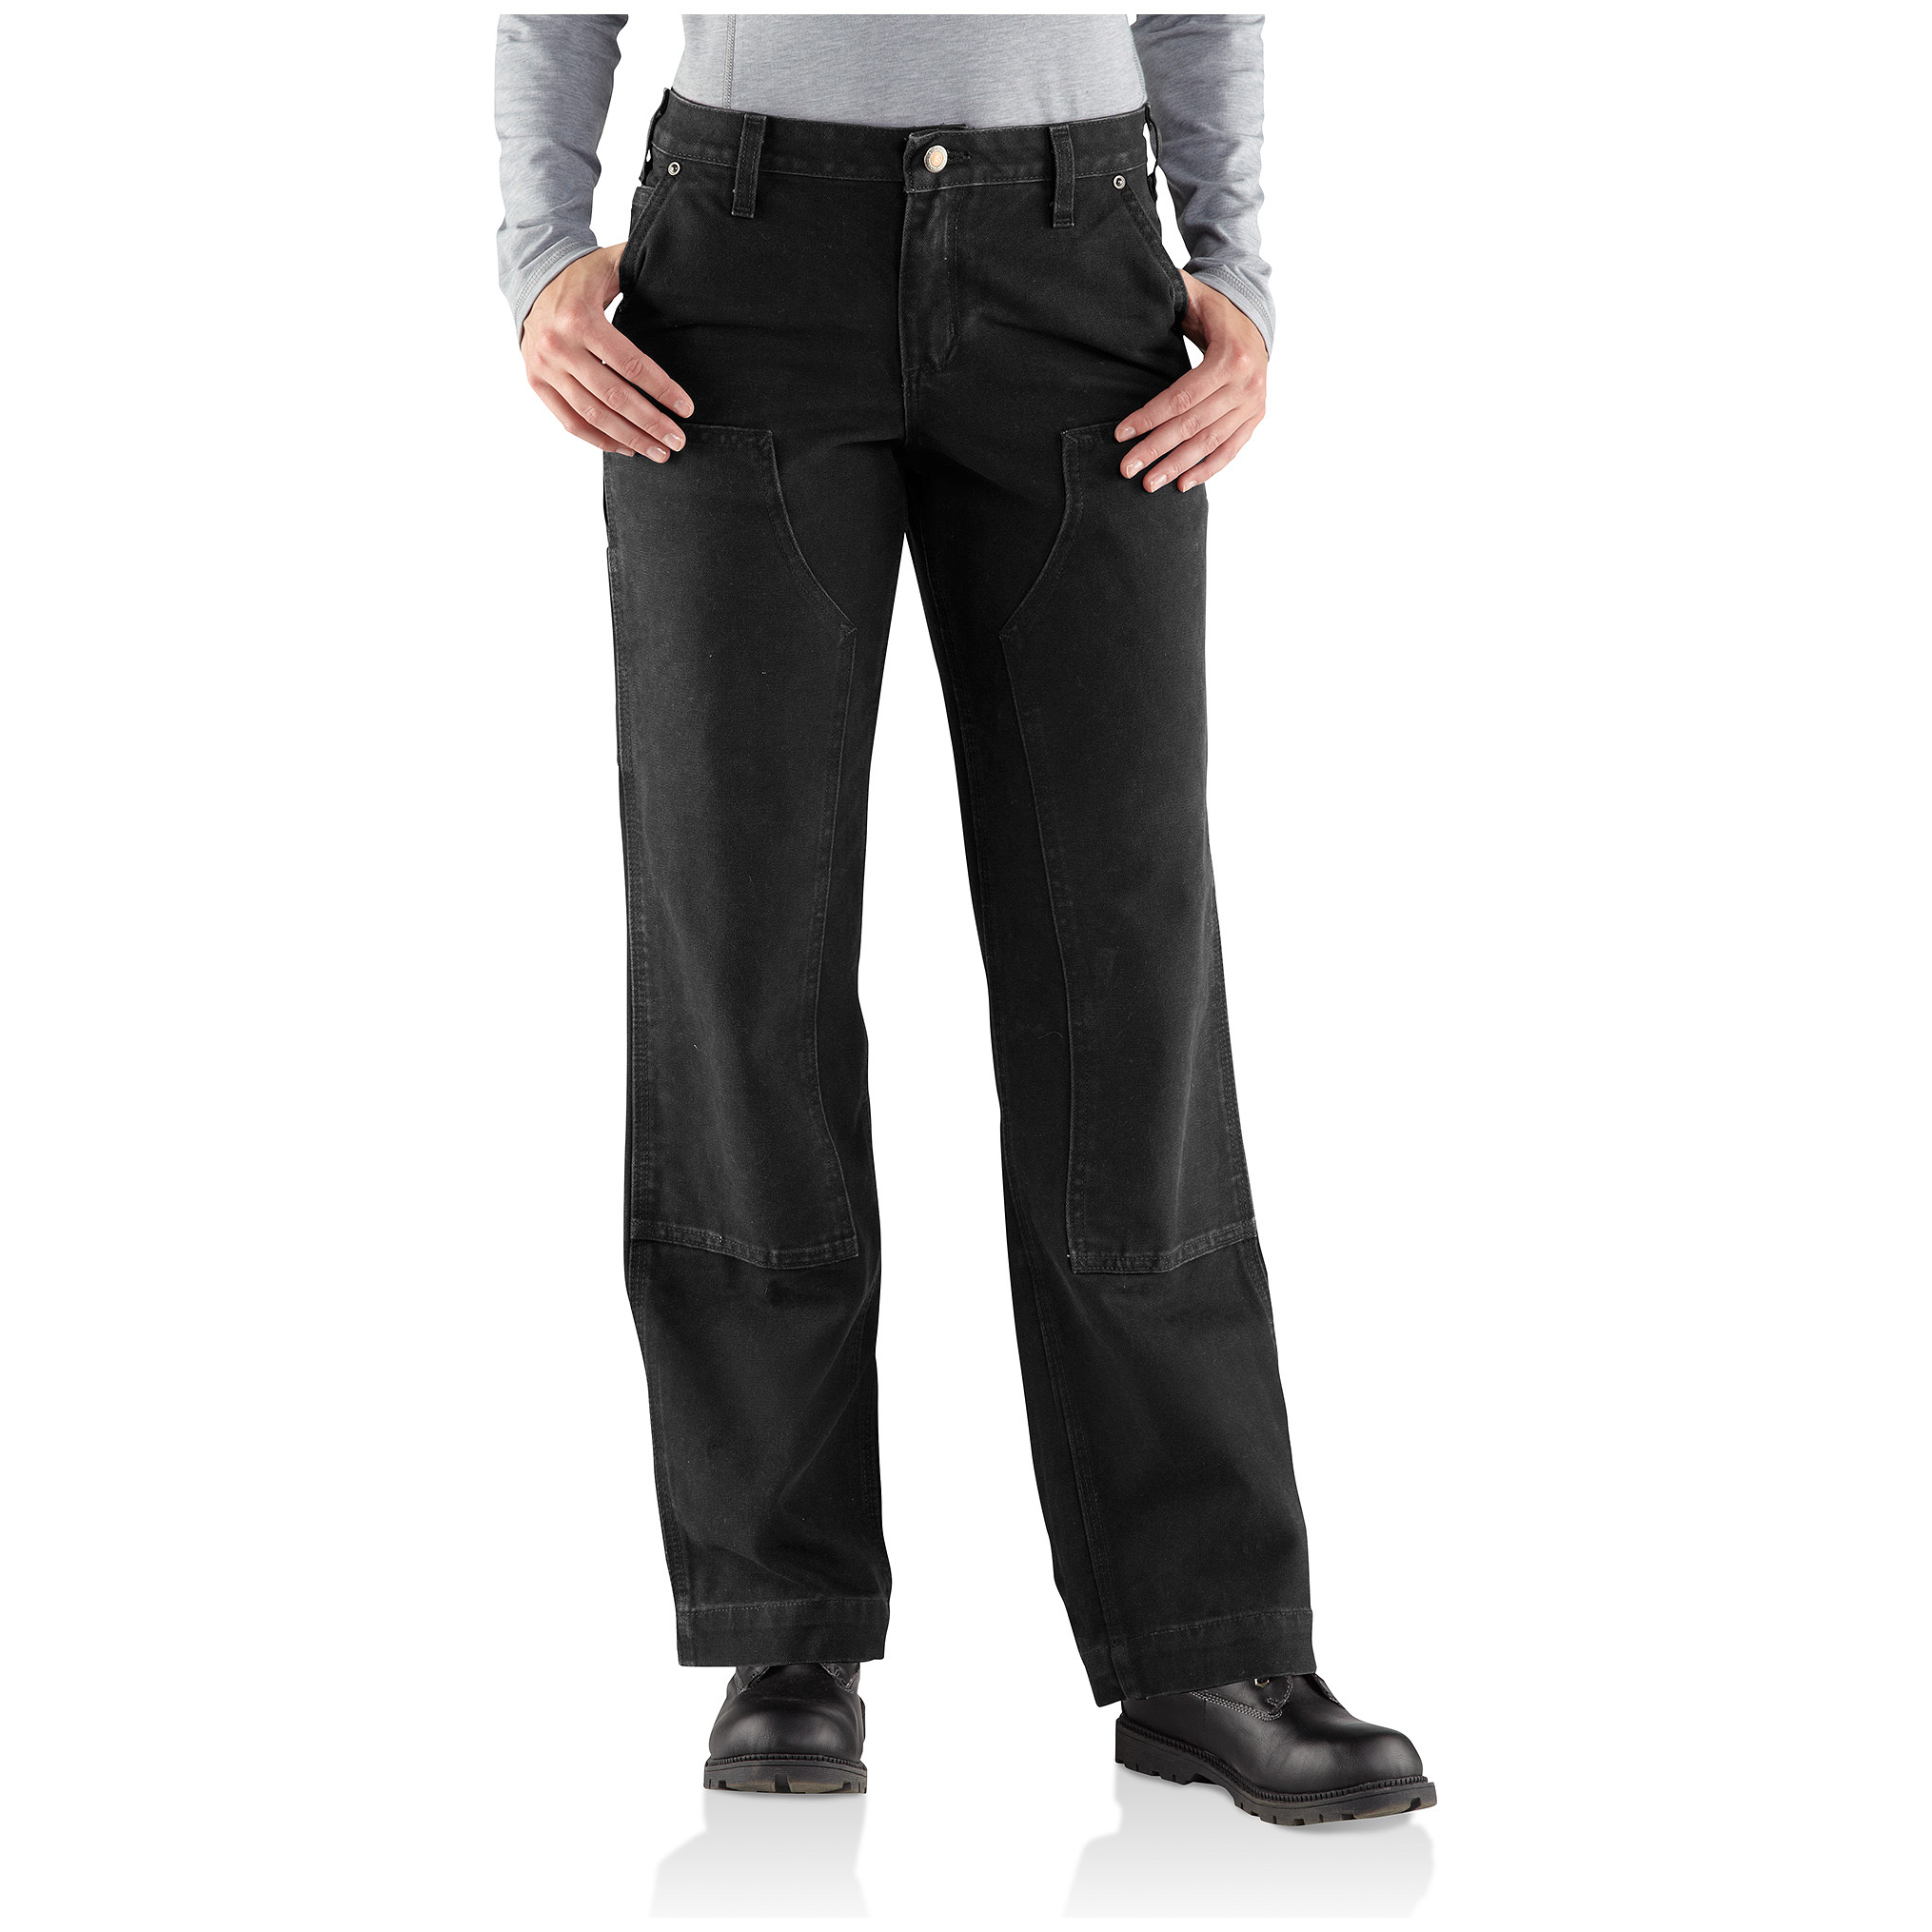 Women's Carhartt Relaxed Fit Sandstone Kane Work Pants. The softest way to handle hard work. Carhartt's sandstone duck fabric is micro-sanded and garment-washed...so it's not only heavy-duty tough, it feels soft and broken-in right out of the box. Details:12-oz. 100% cotton sandstone duck, with double-front toughness for super durability Relaxed fit through the hips and thighs Mid-rise, sits just below the waist Straight leg Contoured waistband prevents gapping in back Utility pockets and utility loop for extras Machine wash / dry. Imported. Order ONLINE Today! - $44.99